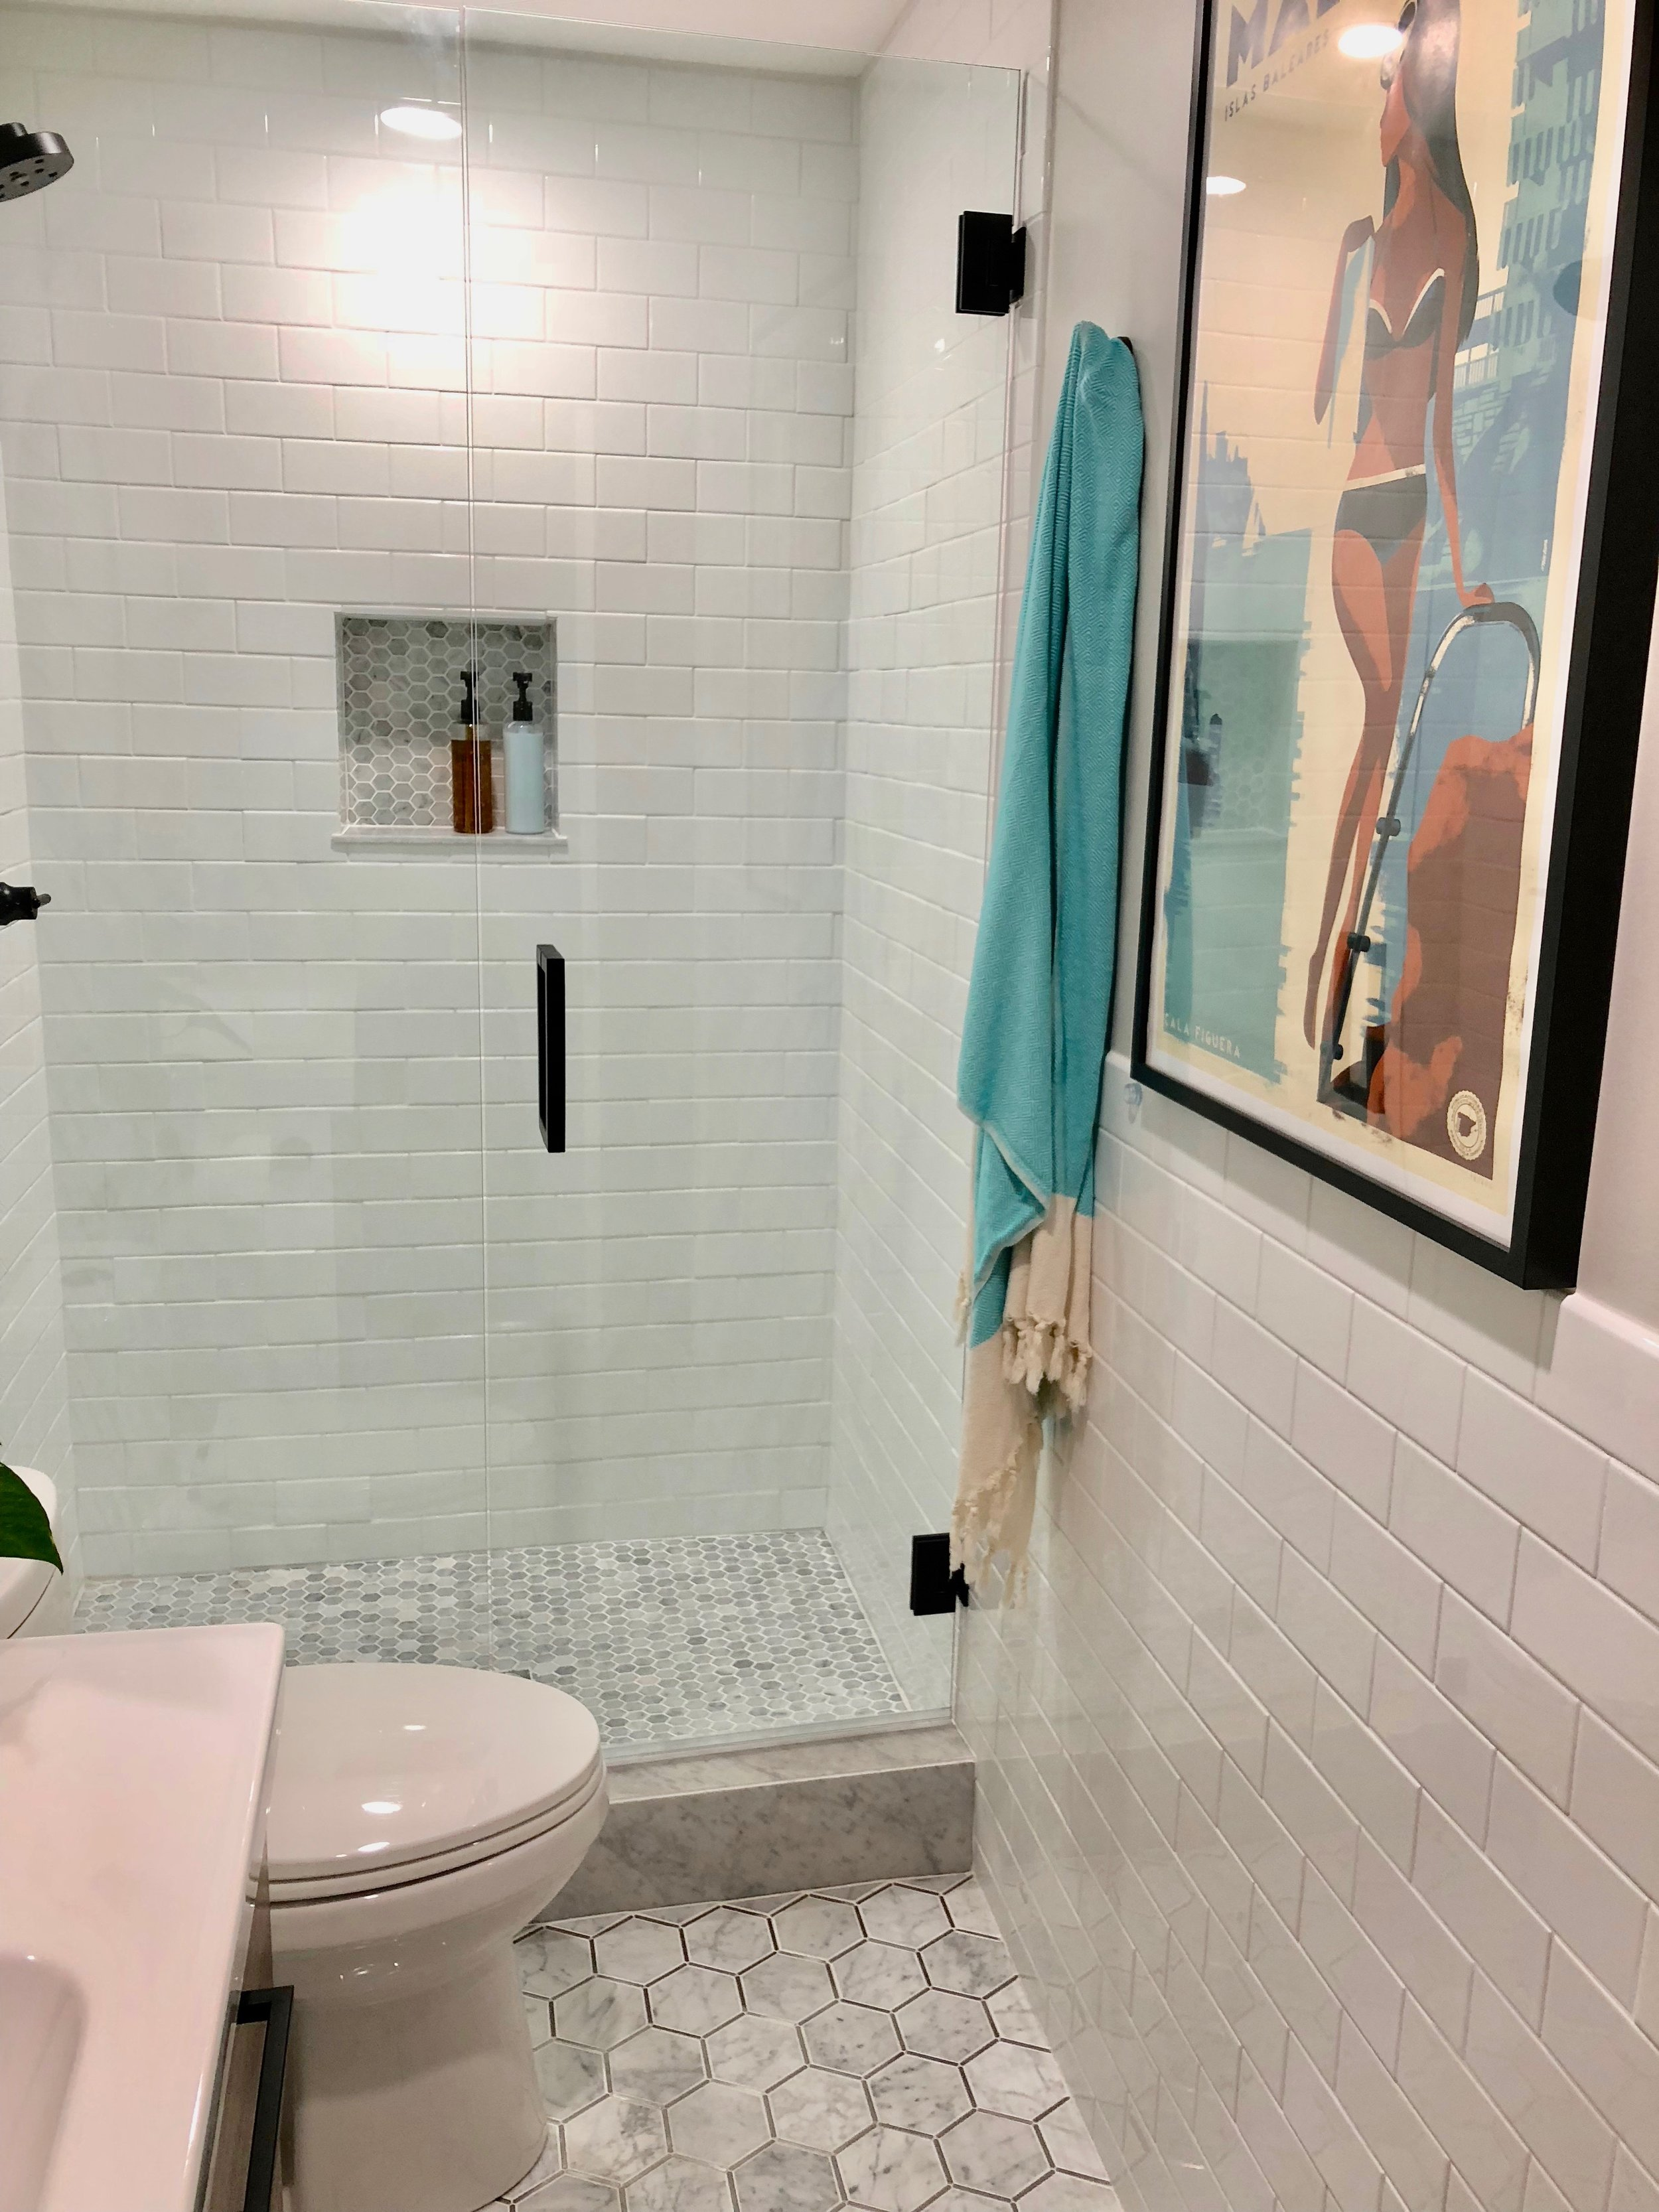 That's a lot of subway tile! Its on all 4 walls.